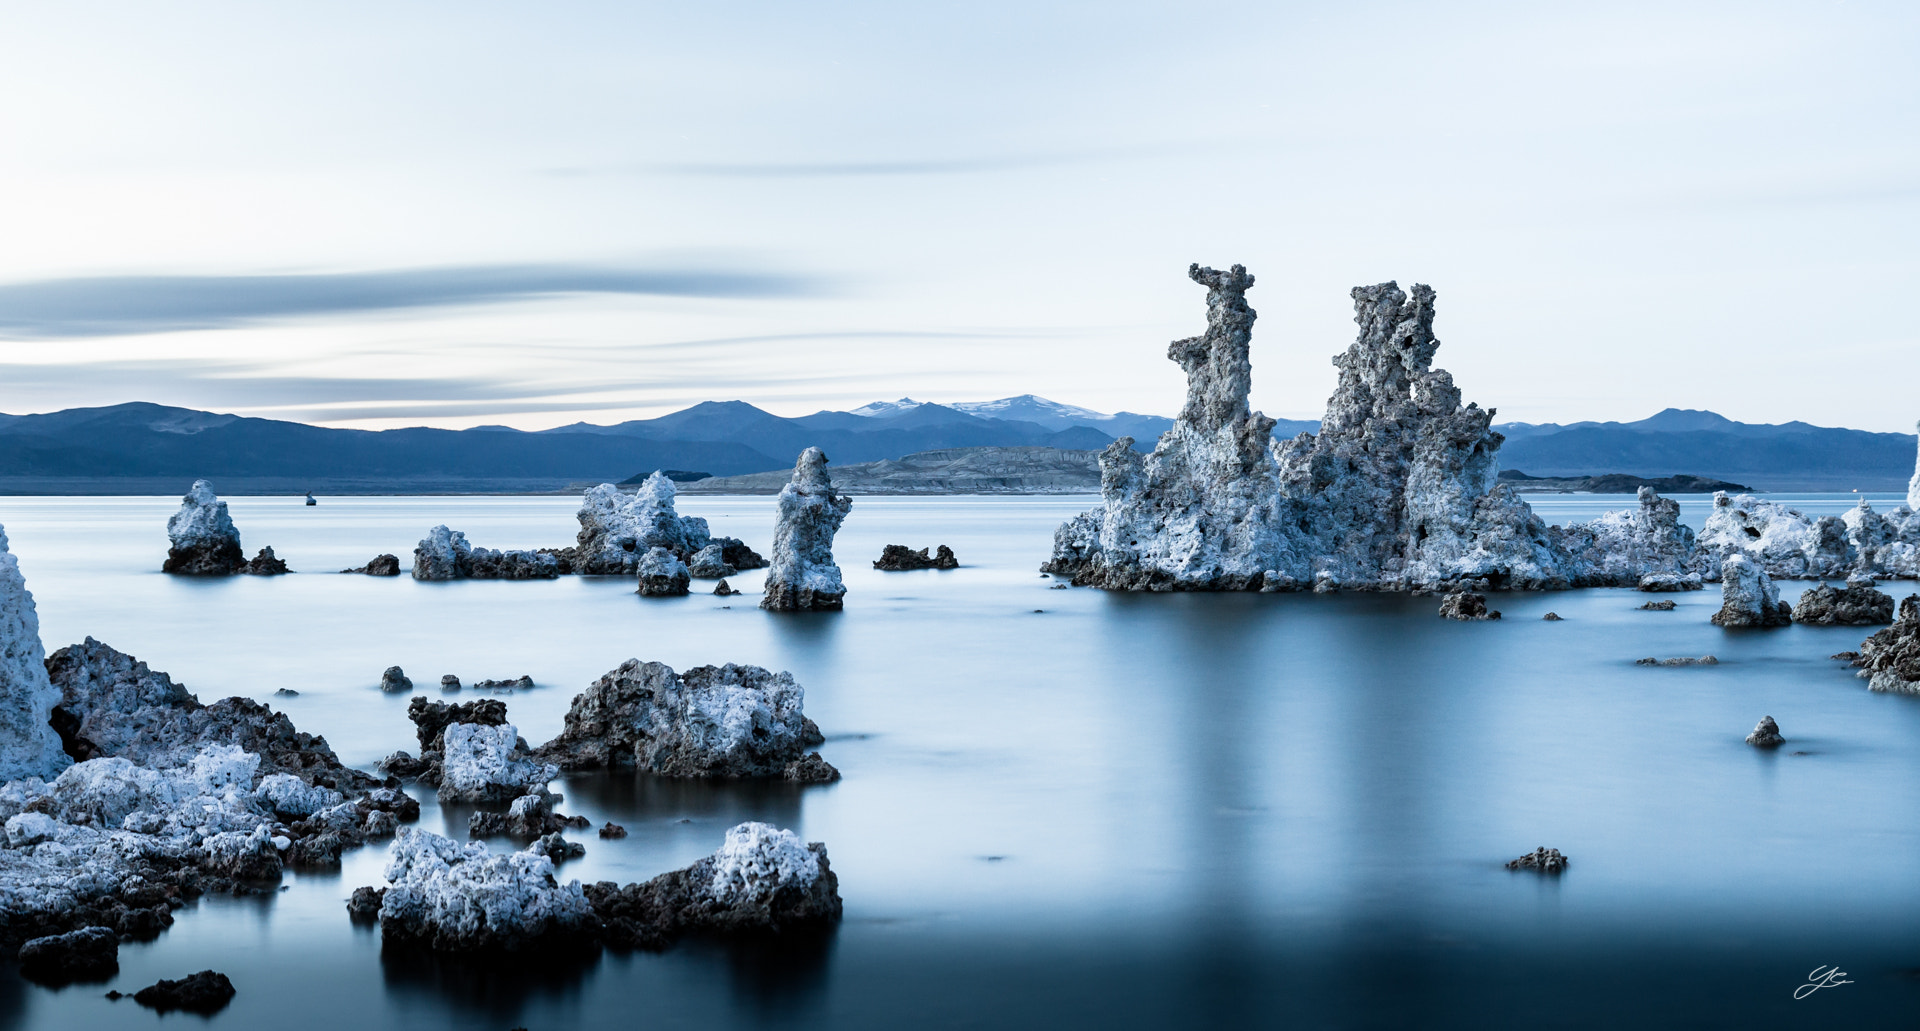 Photograph Mono lake by Yannick Carbonneaux on 500px